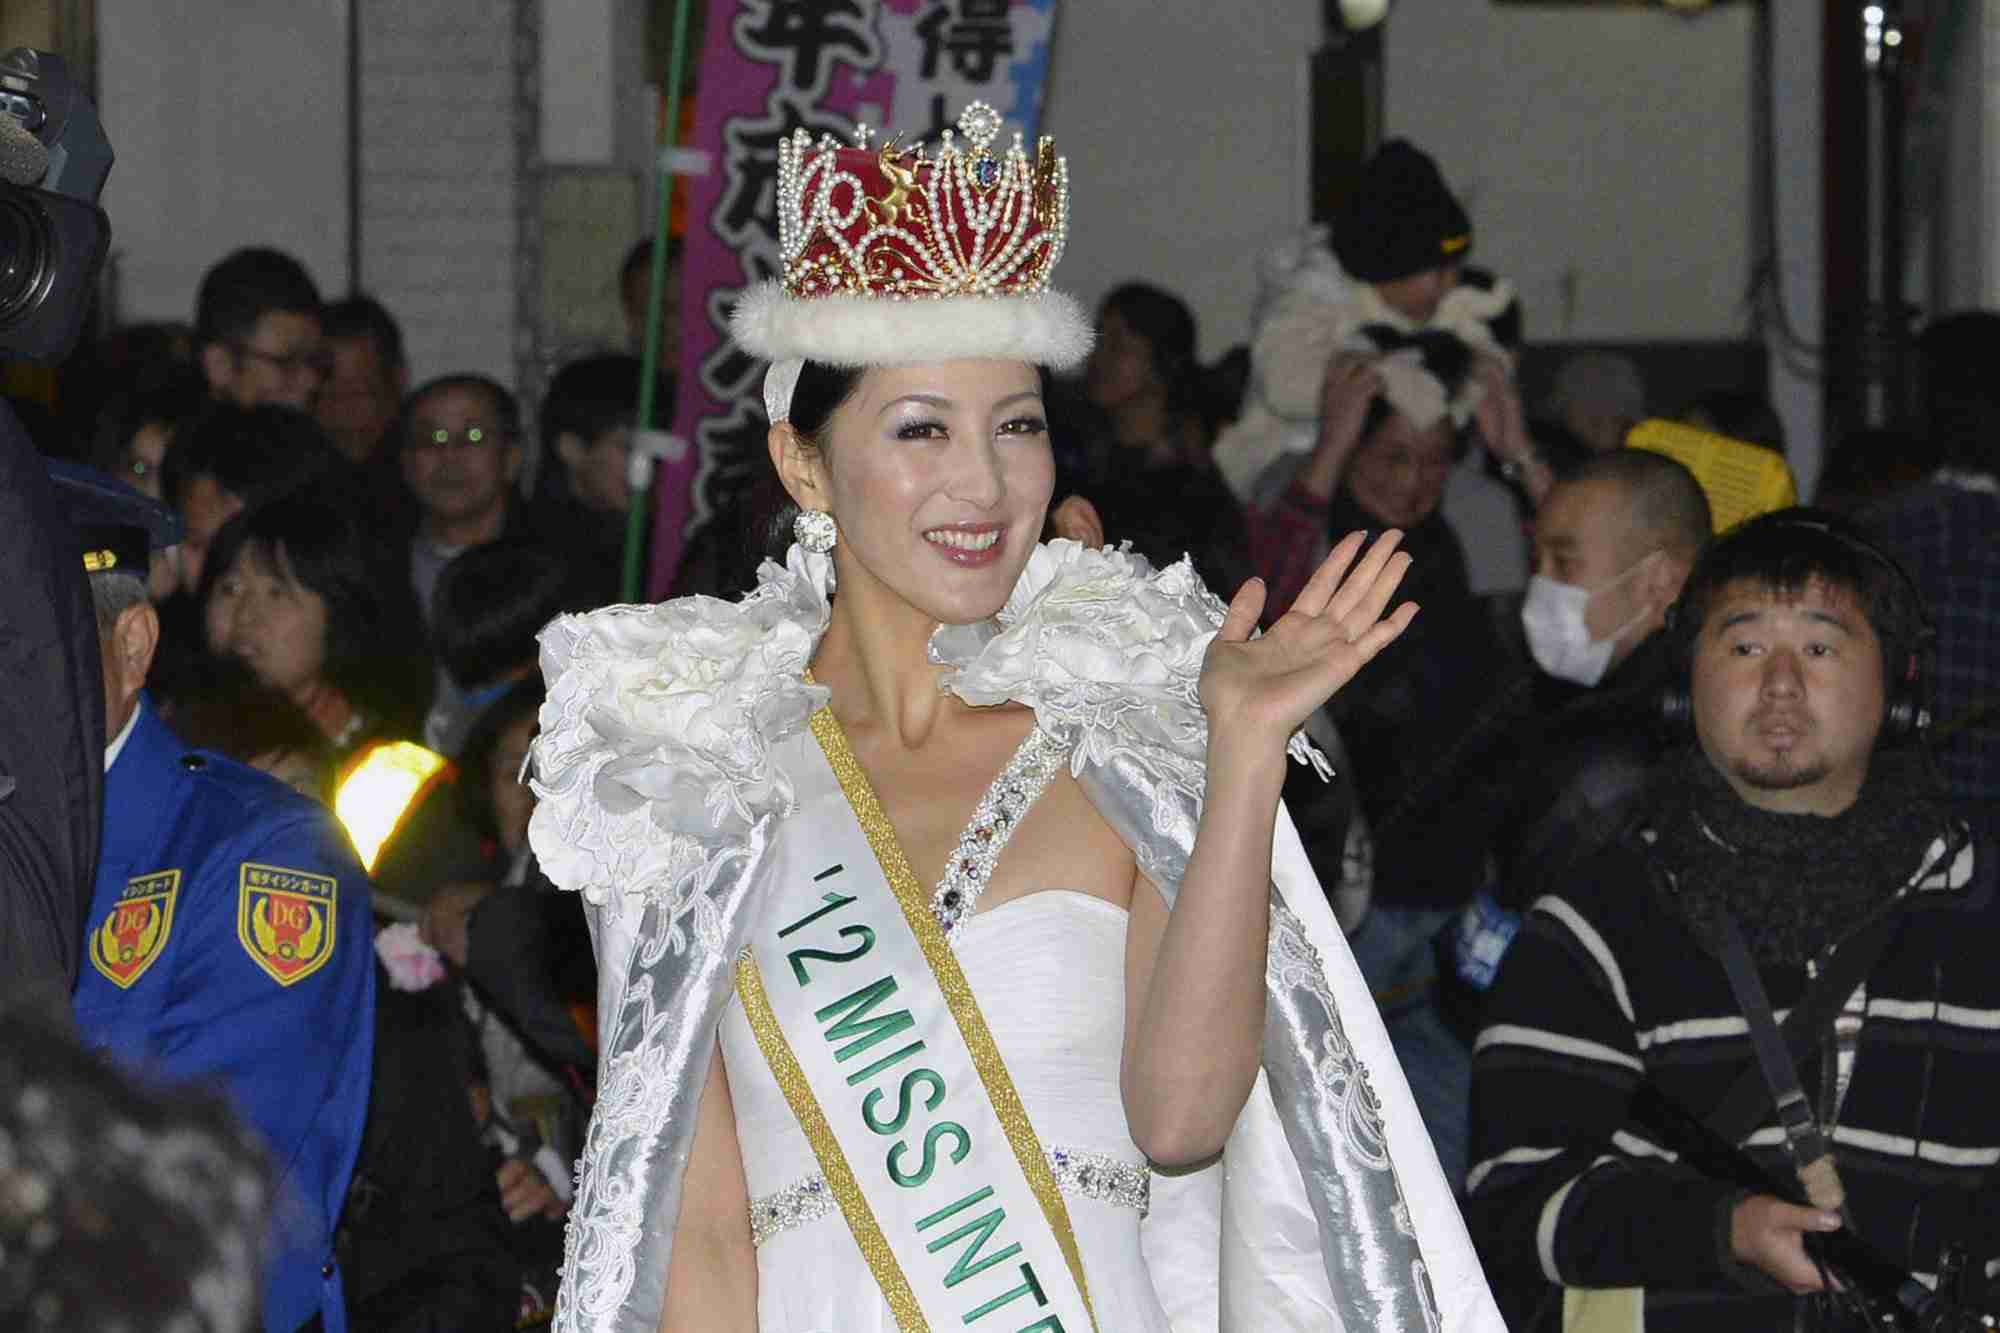 Japan's Miss International Takes on Mob-Backed Entertainment Complex - The Daily Beast